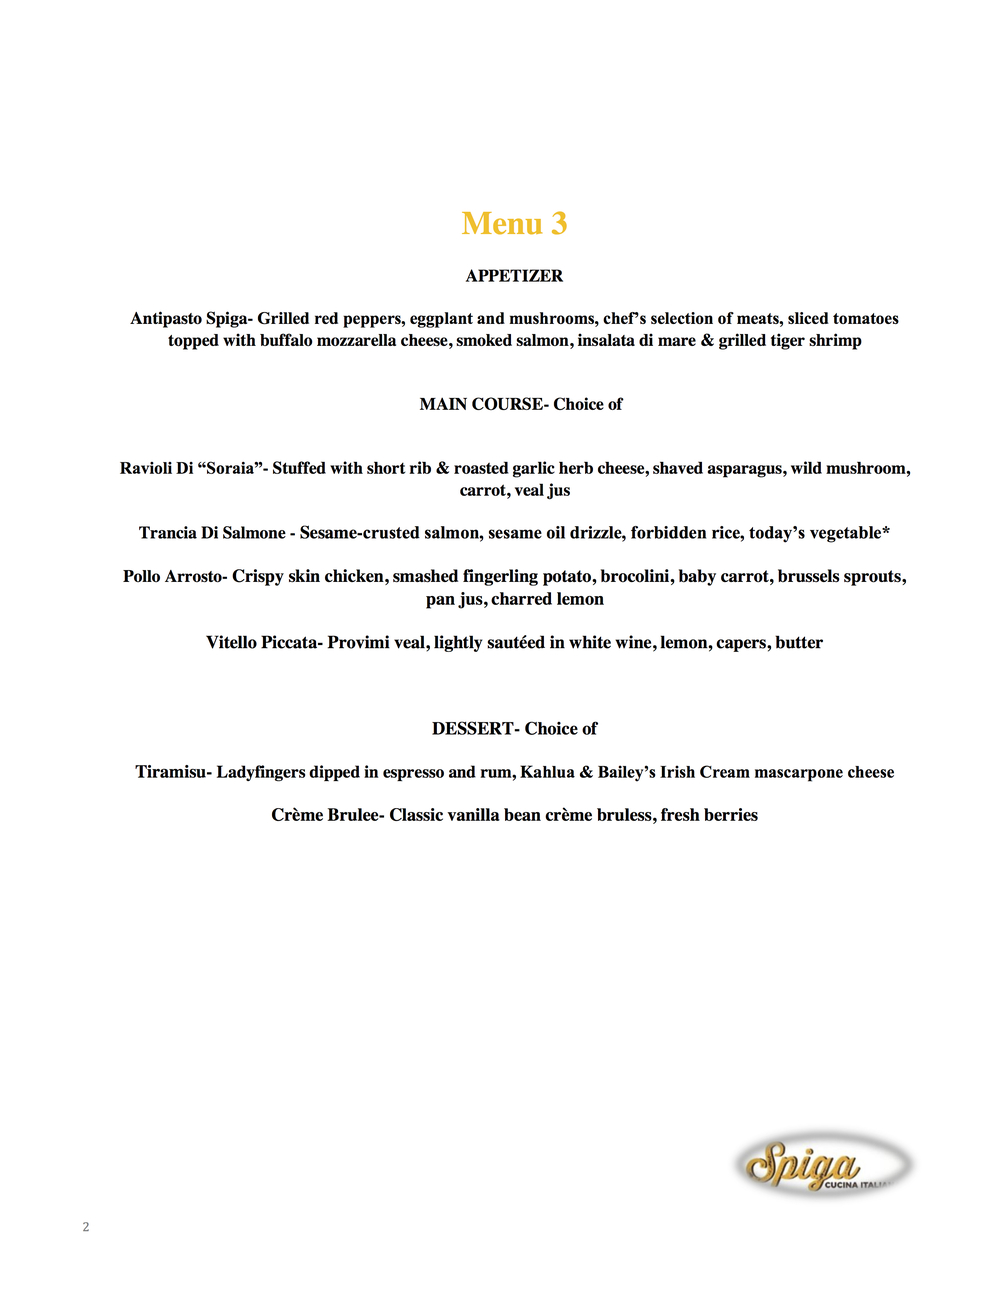 revised dinner group menus 3.jpg